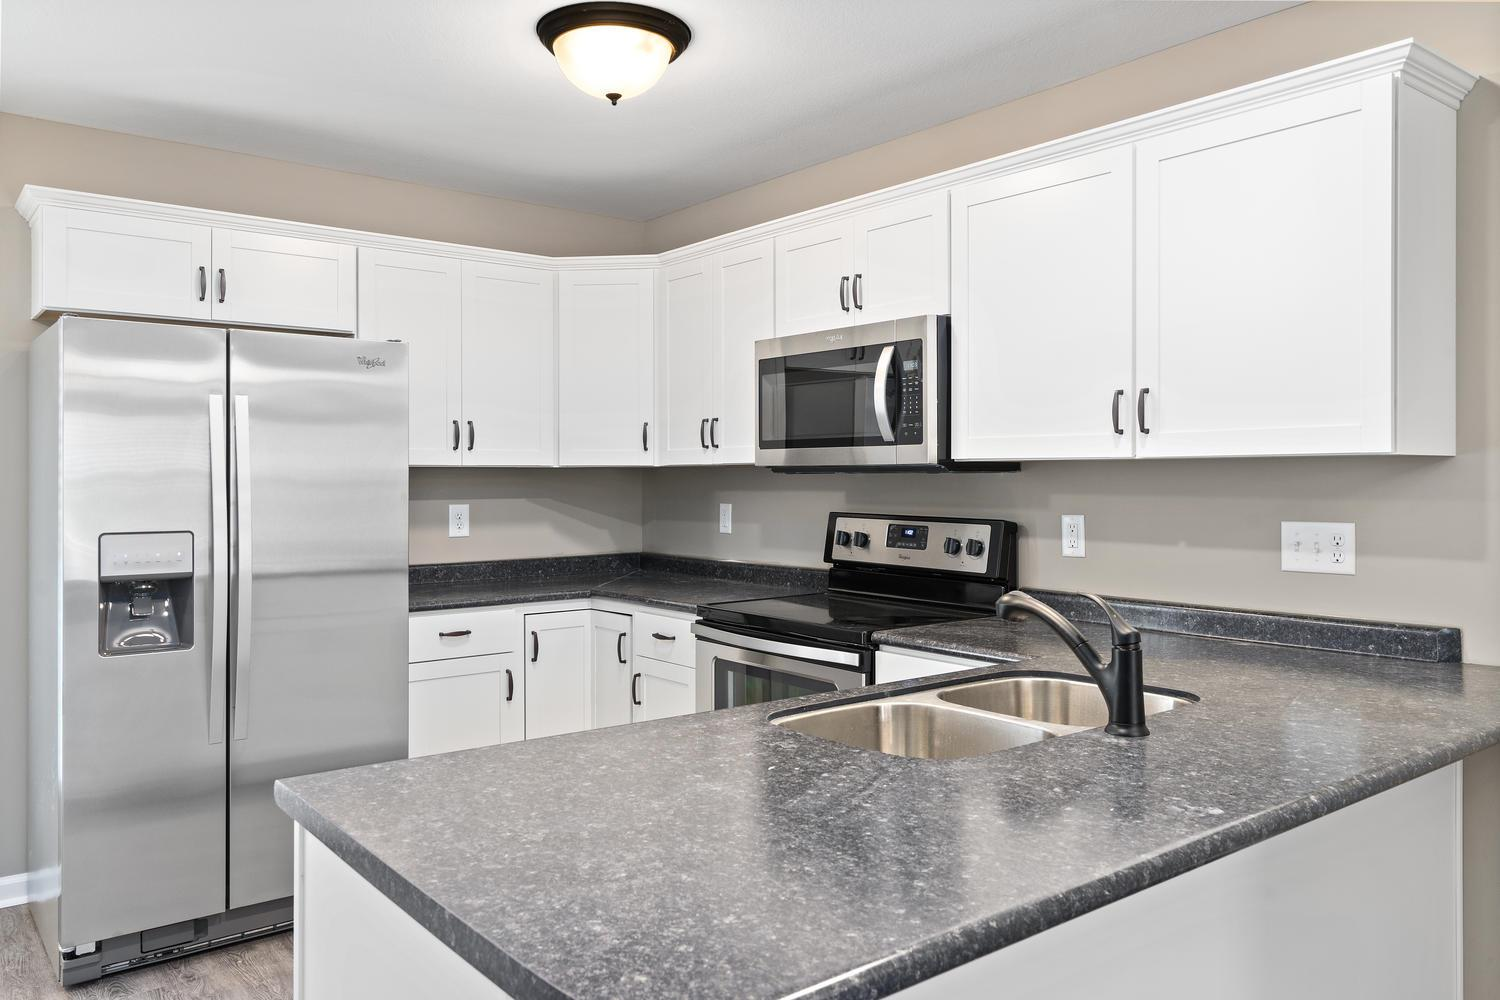 Check Out This Amazing New Construction townhome located close to Tennova Healthcare & Zoned for Rossview - Stainless Steel Appliances - Granite Counters in the Kitchen is Standard Selection - LVT Floors Installed on Main Level - Community Clubhouse & Pool - Pick Between 8 Different Selection Packages BEFORE September 15th